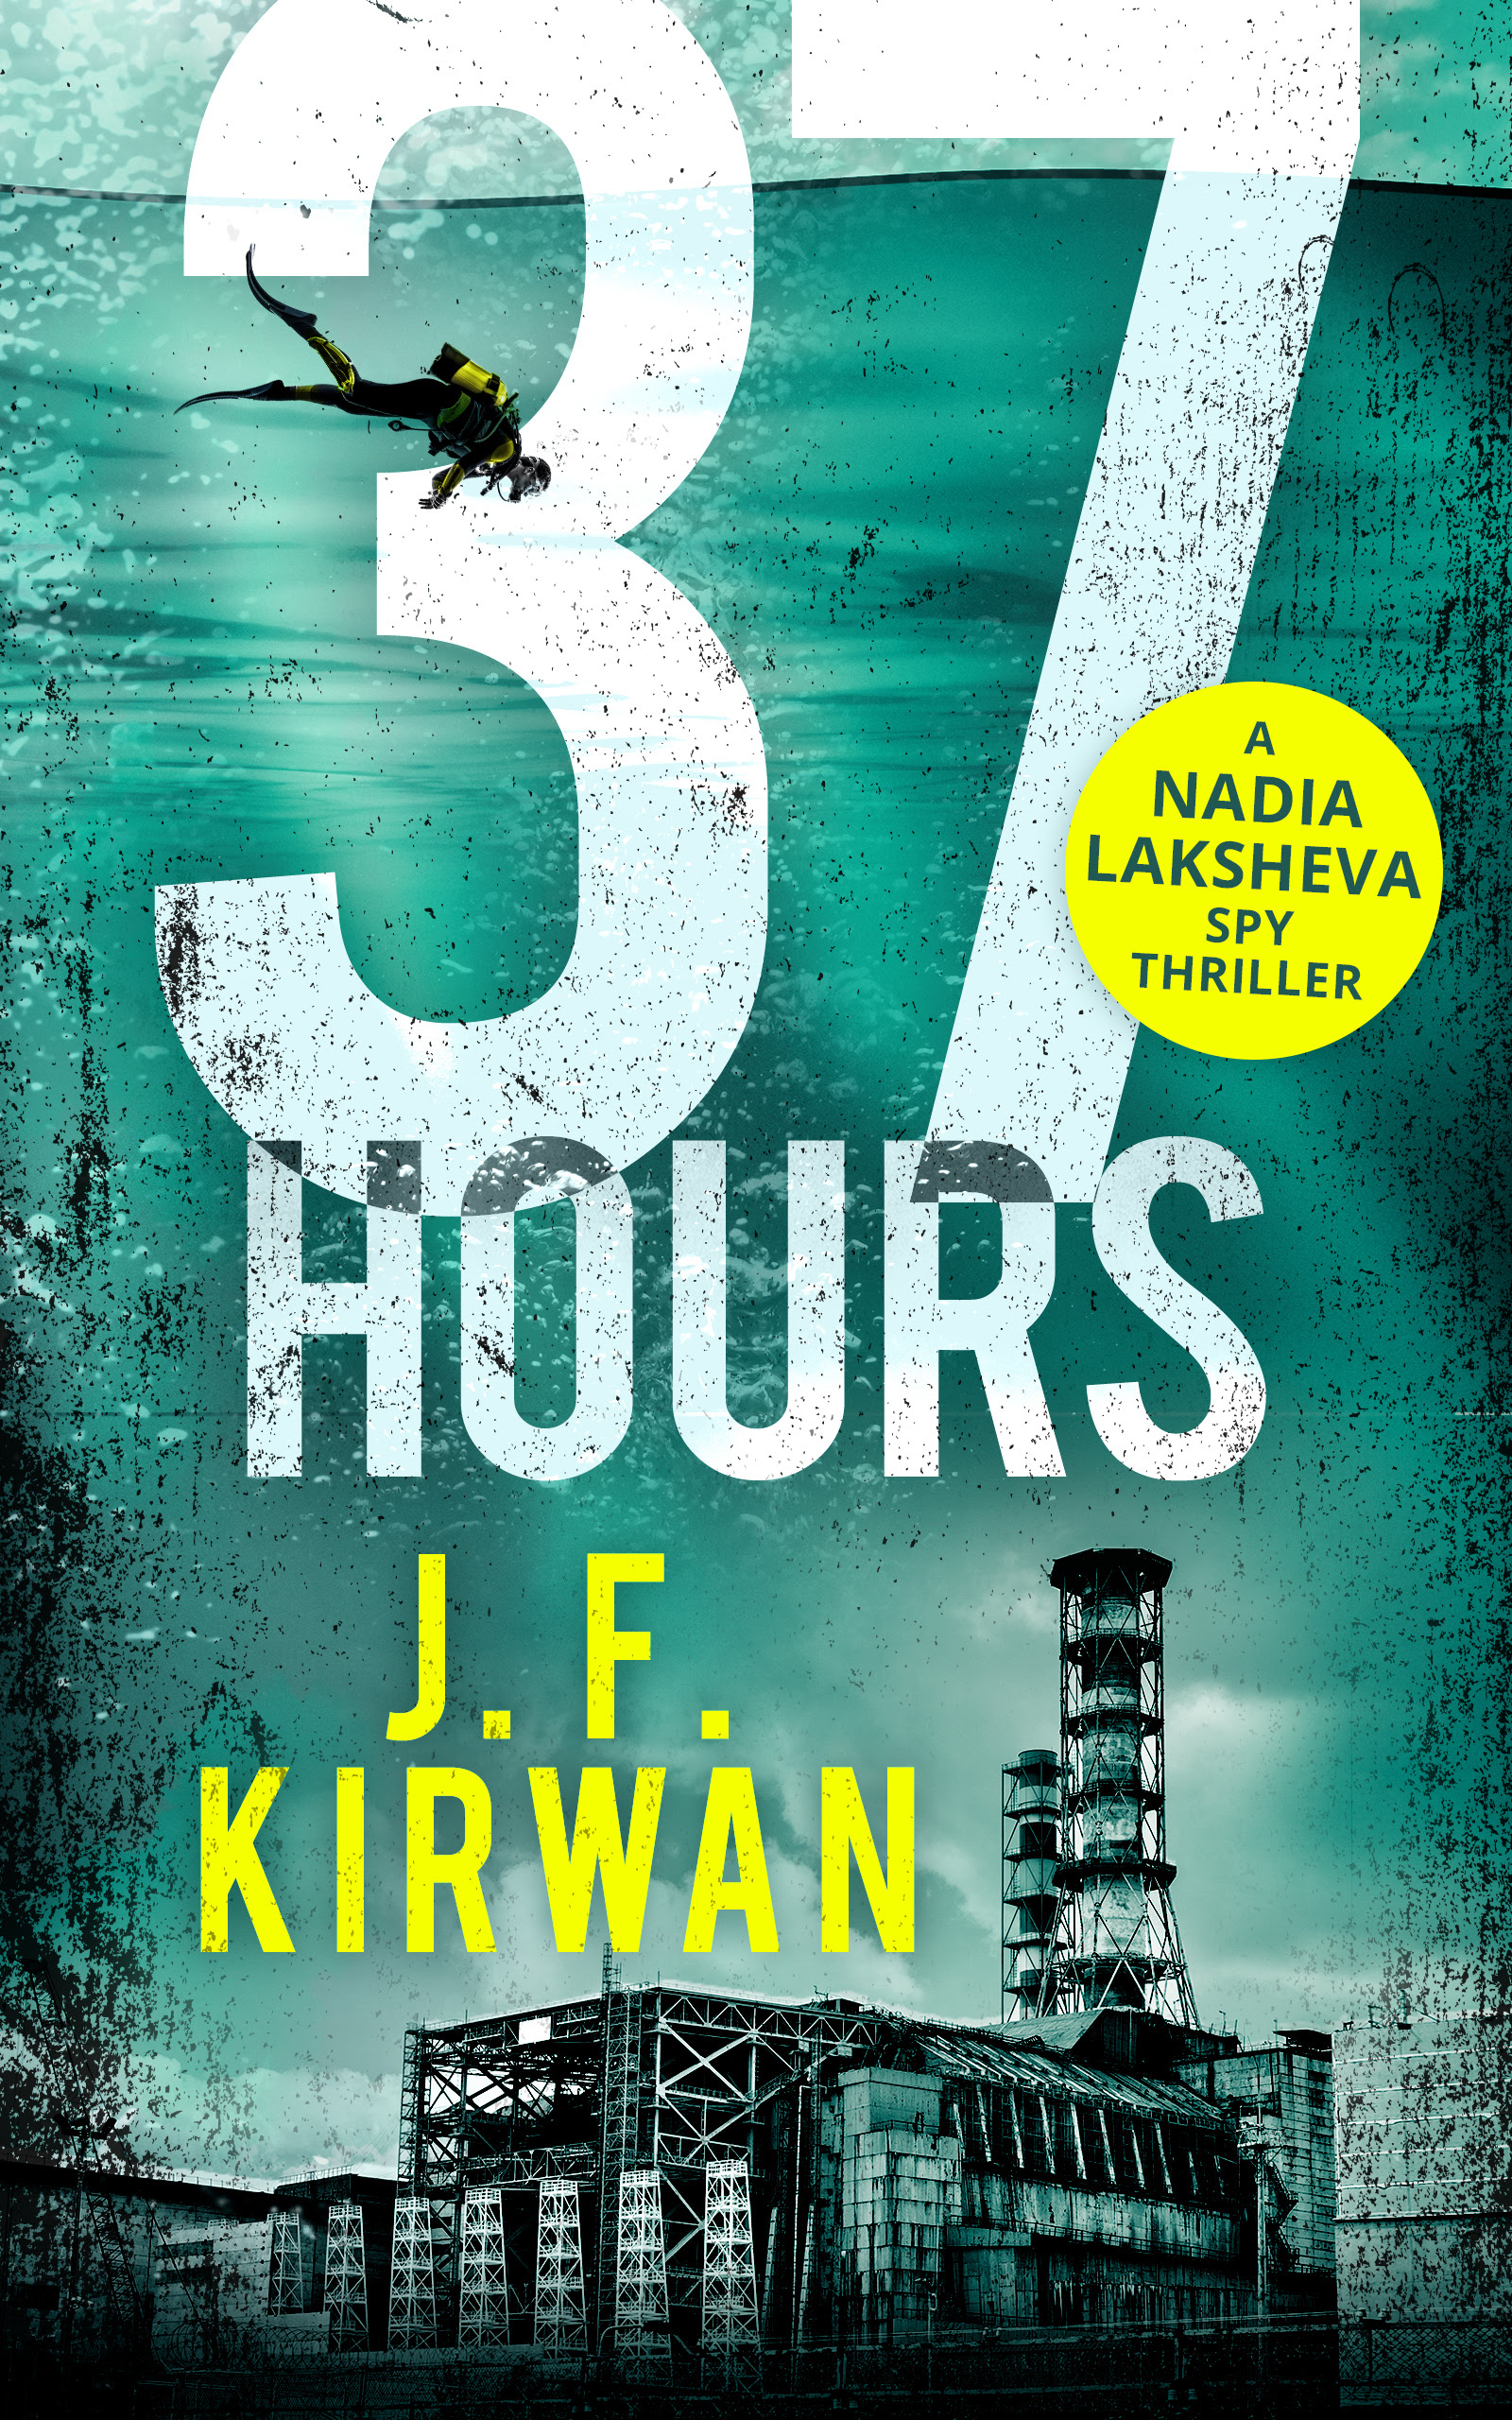 https://wall-to-wall-books.blogspot.com/2017/10/37-hours-by-jf-kirwan-giveaway.html